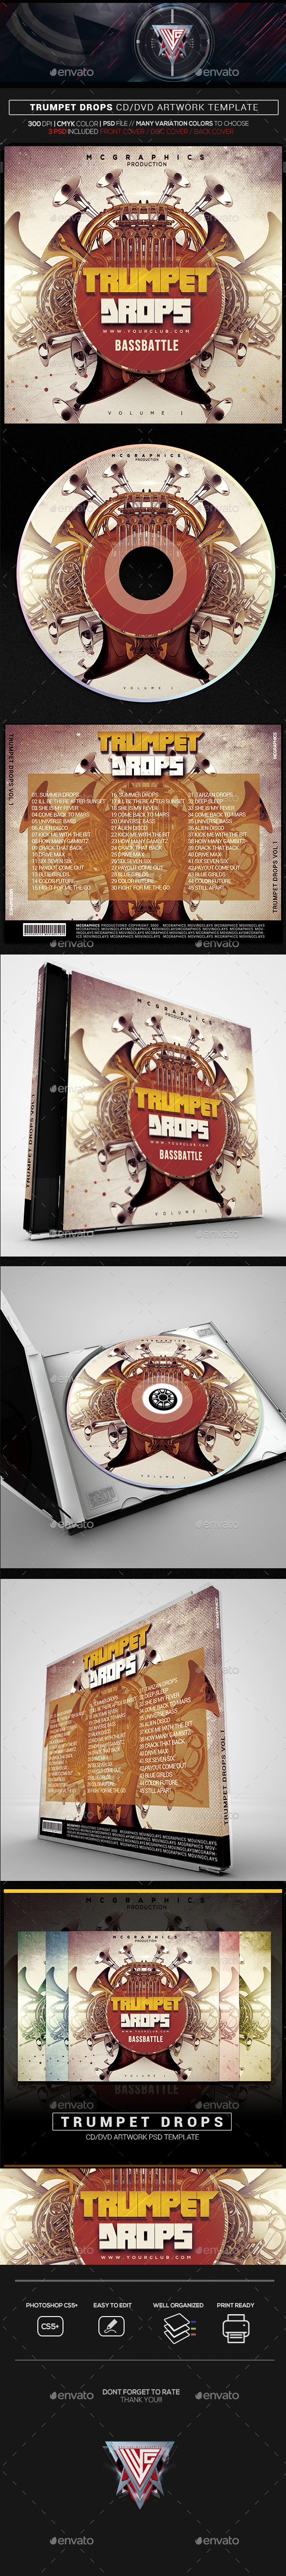 Trumpet Drops CD/DVD Template - CD & DVD Artwork Print Templates